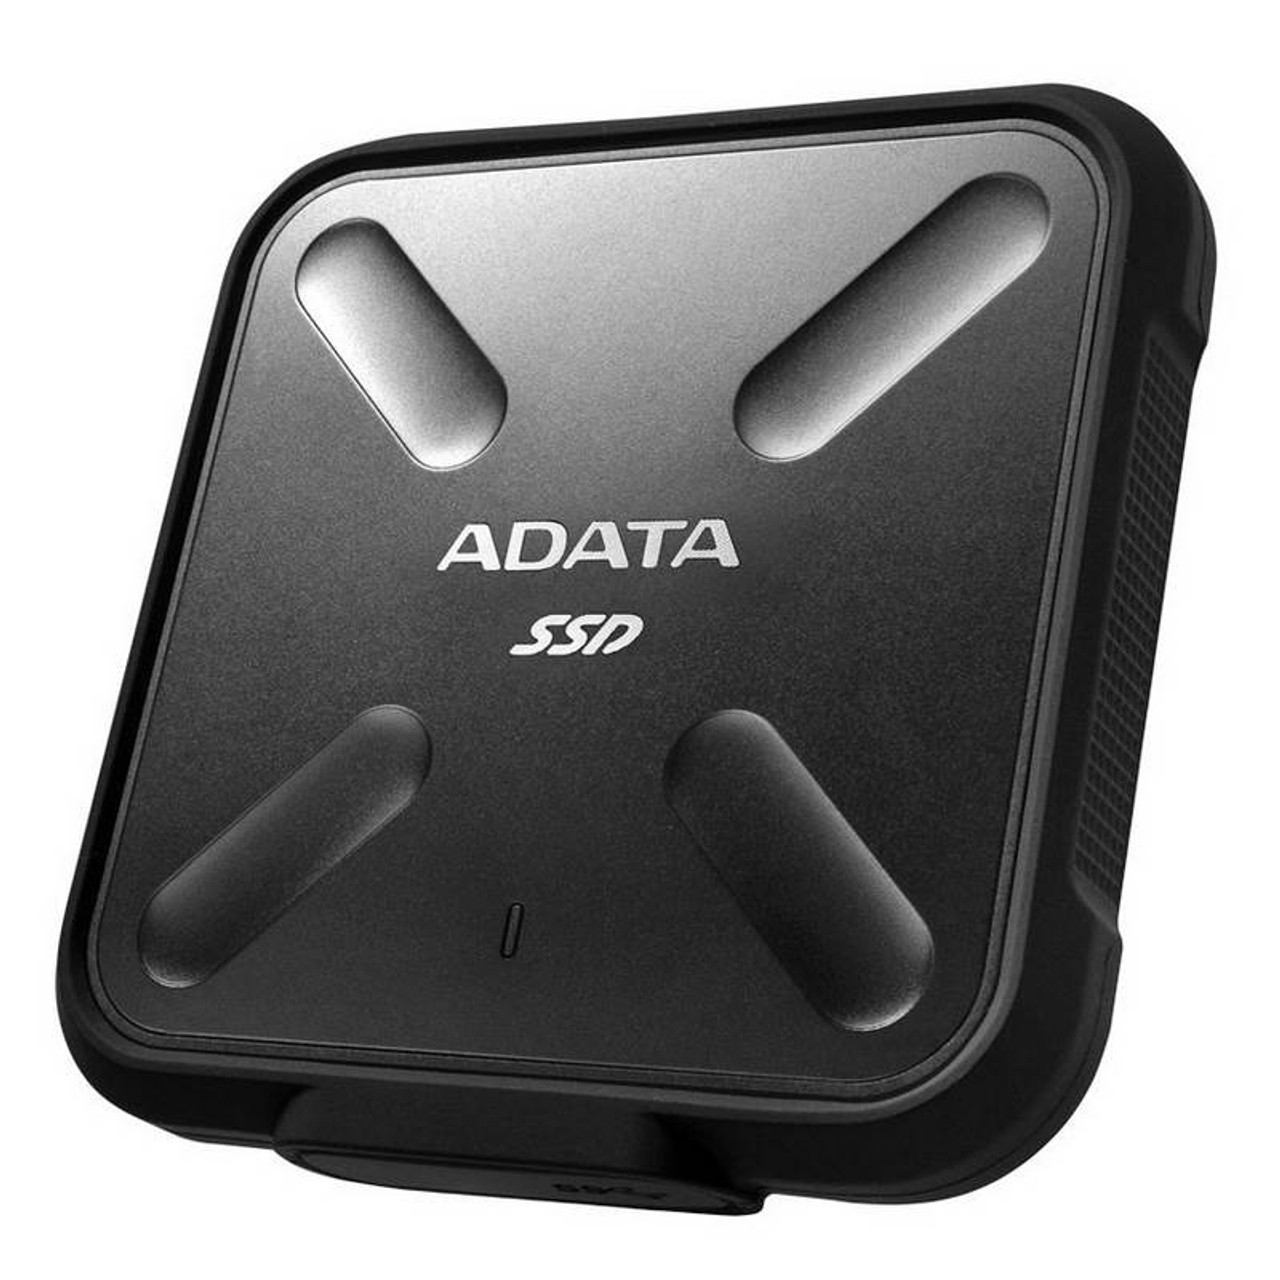 Image for Adata SD700 1TB USB 3.1 Portable External 3D NAND SSD - Black CX Computer Superstore